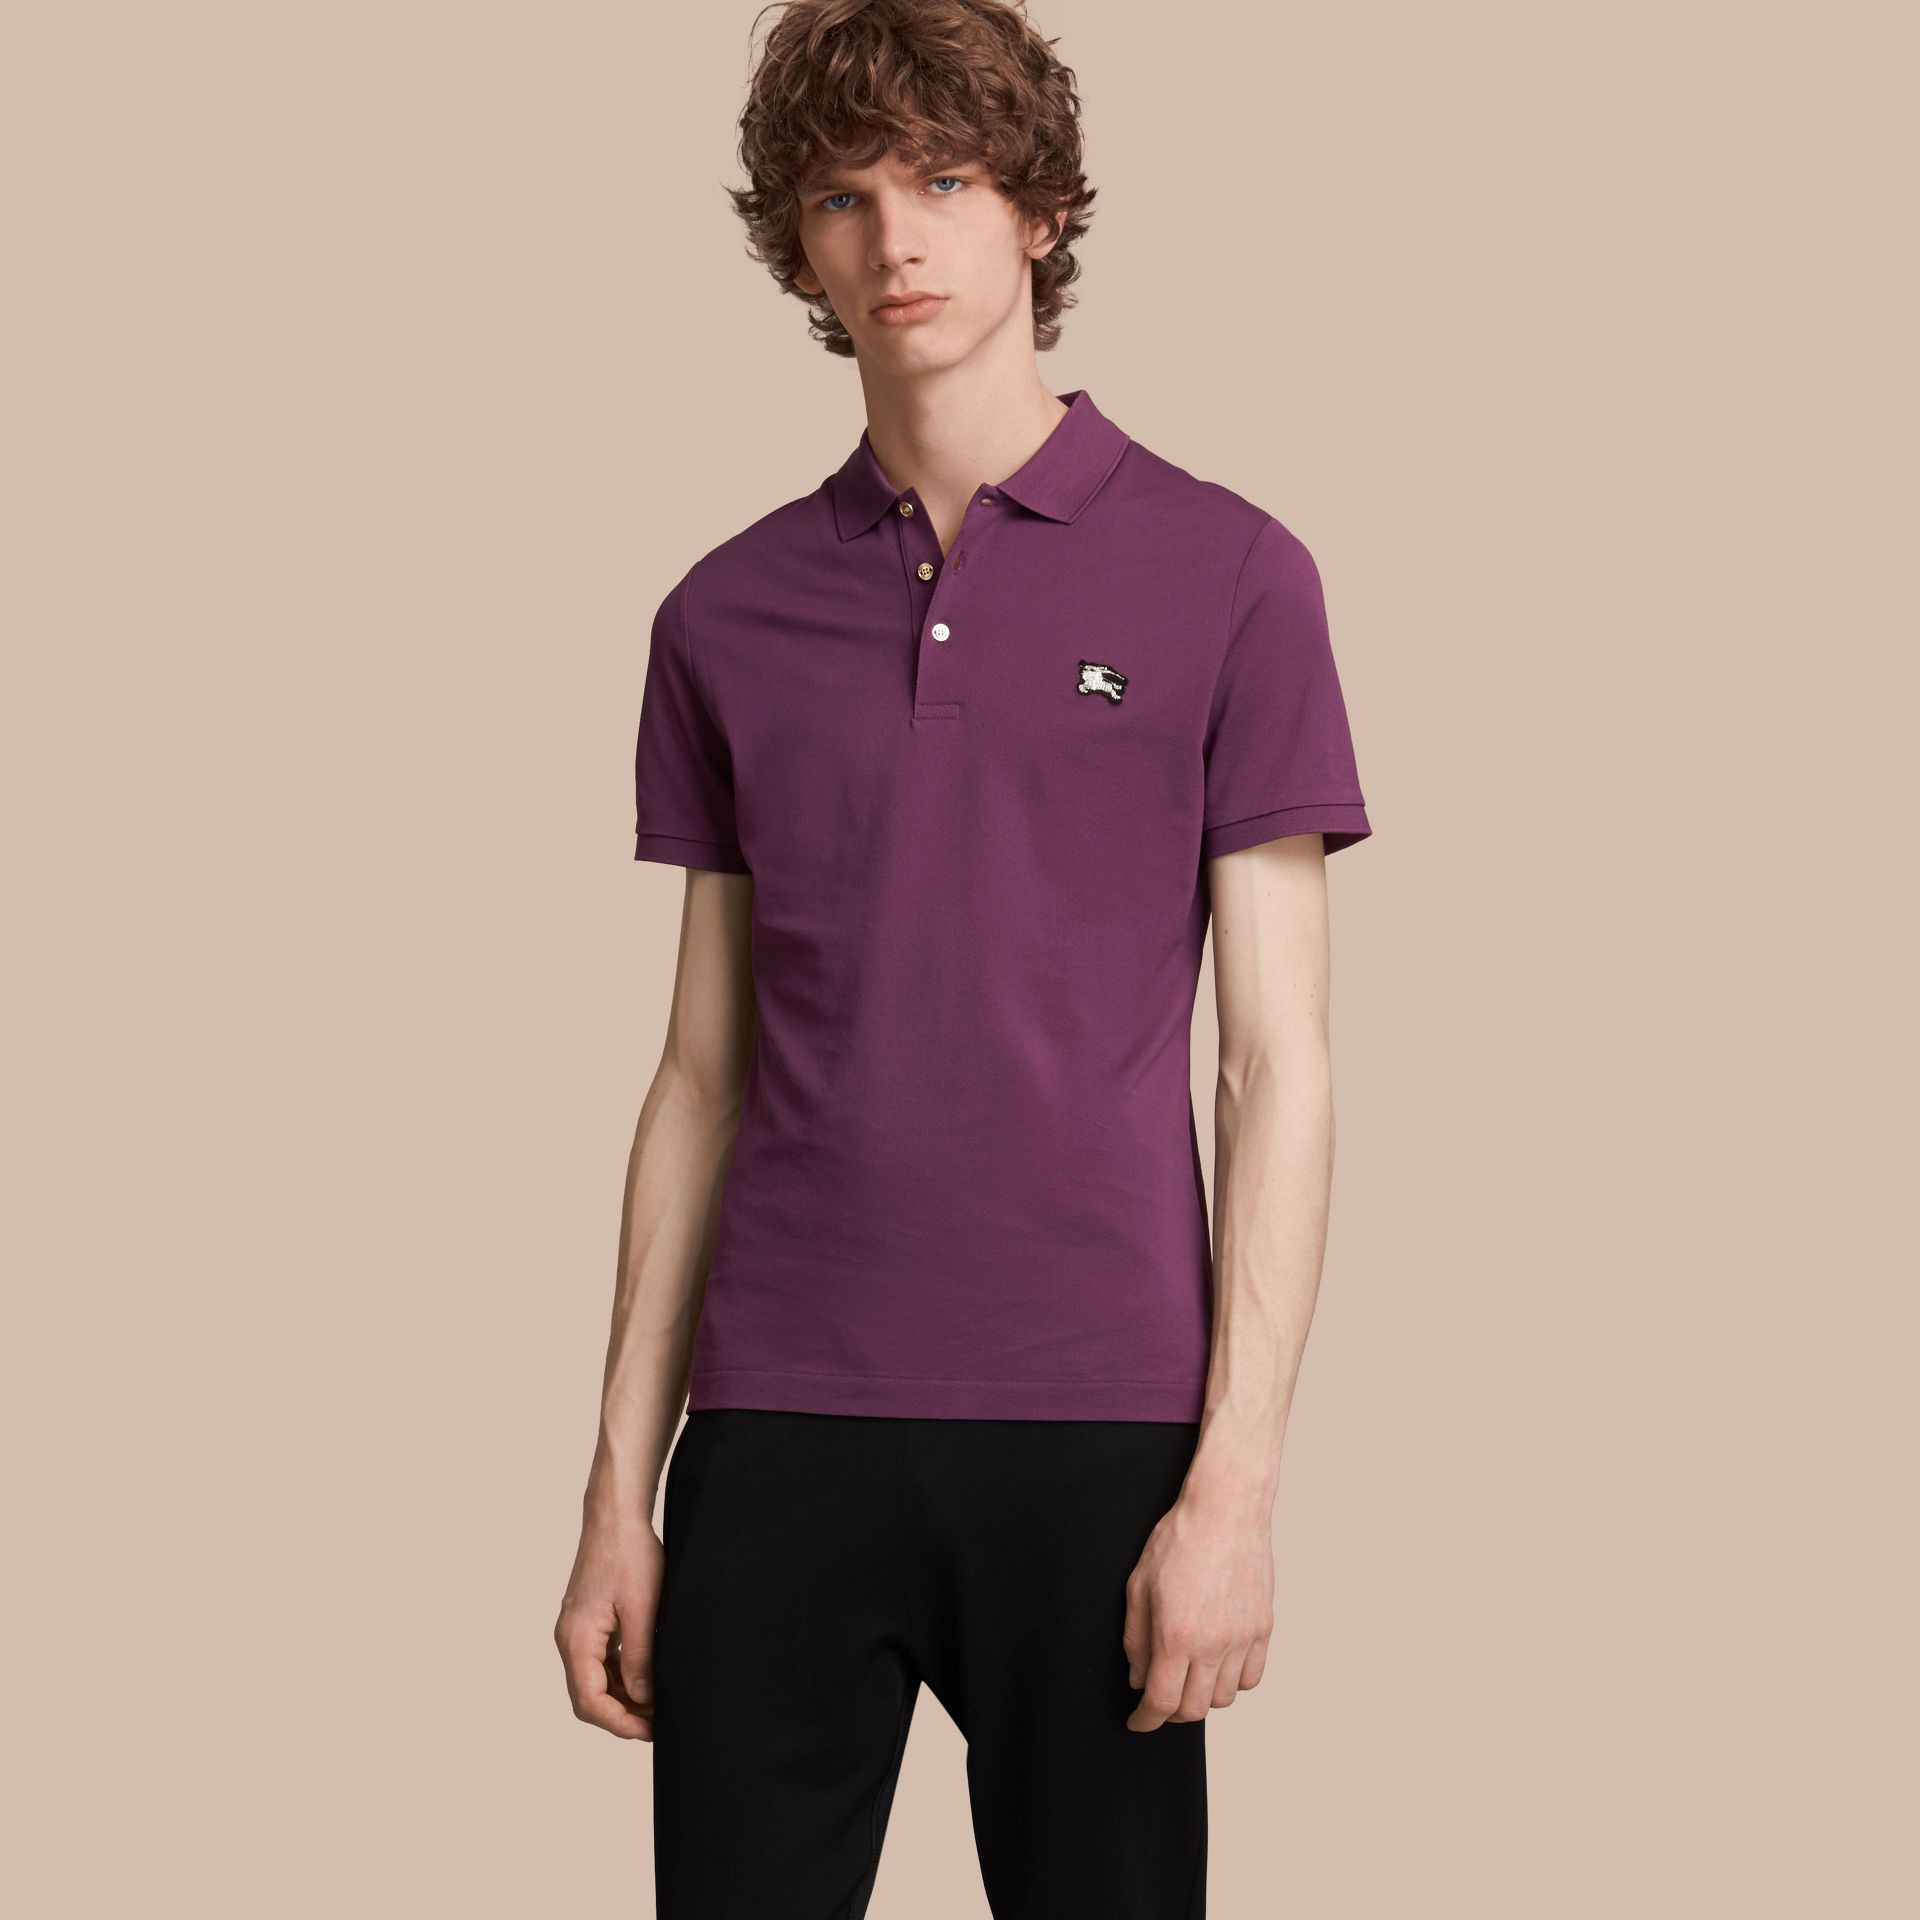 Cotton Piqué Polo Shirt in Heather - Men | Burberry Australia - gallery image 1